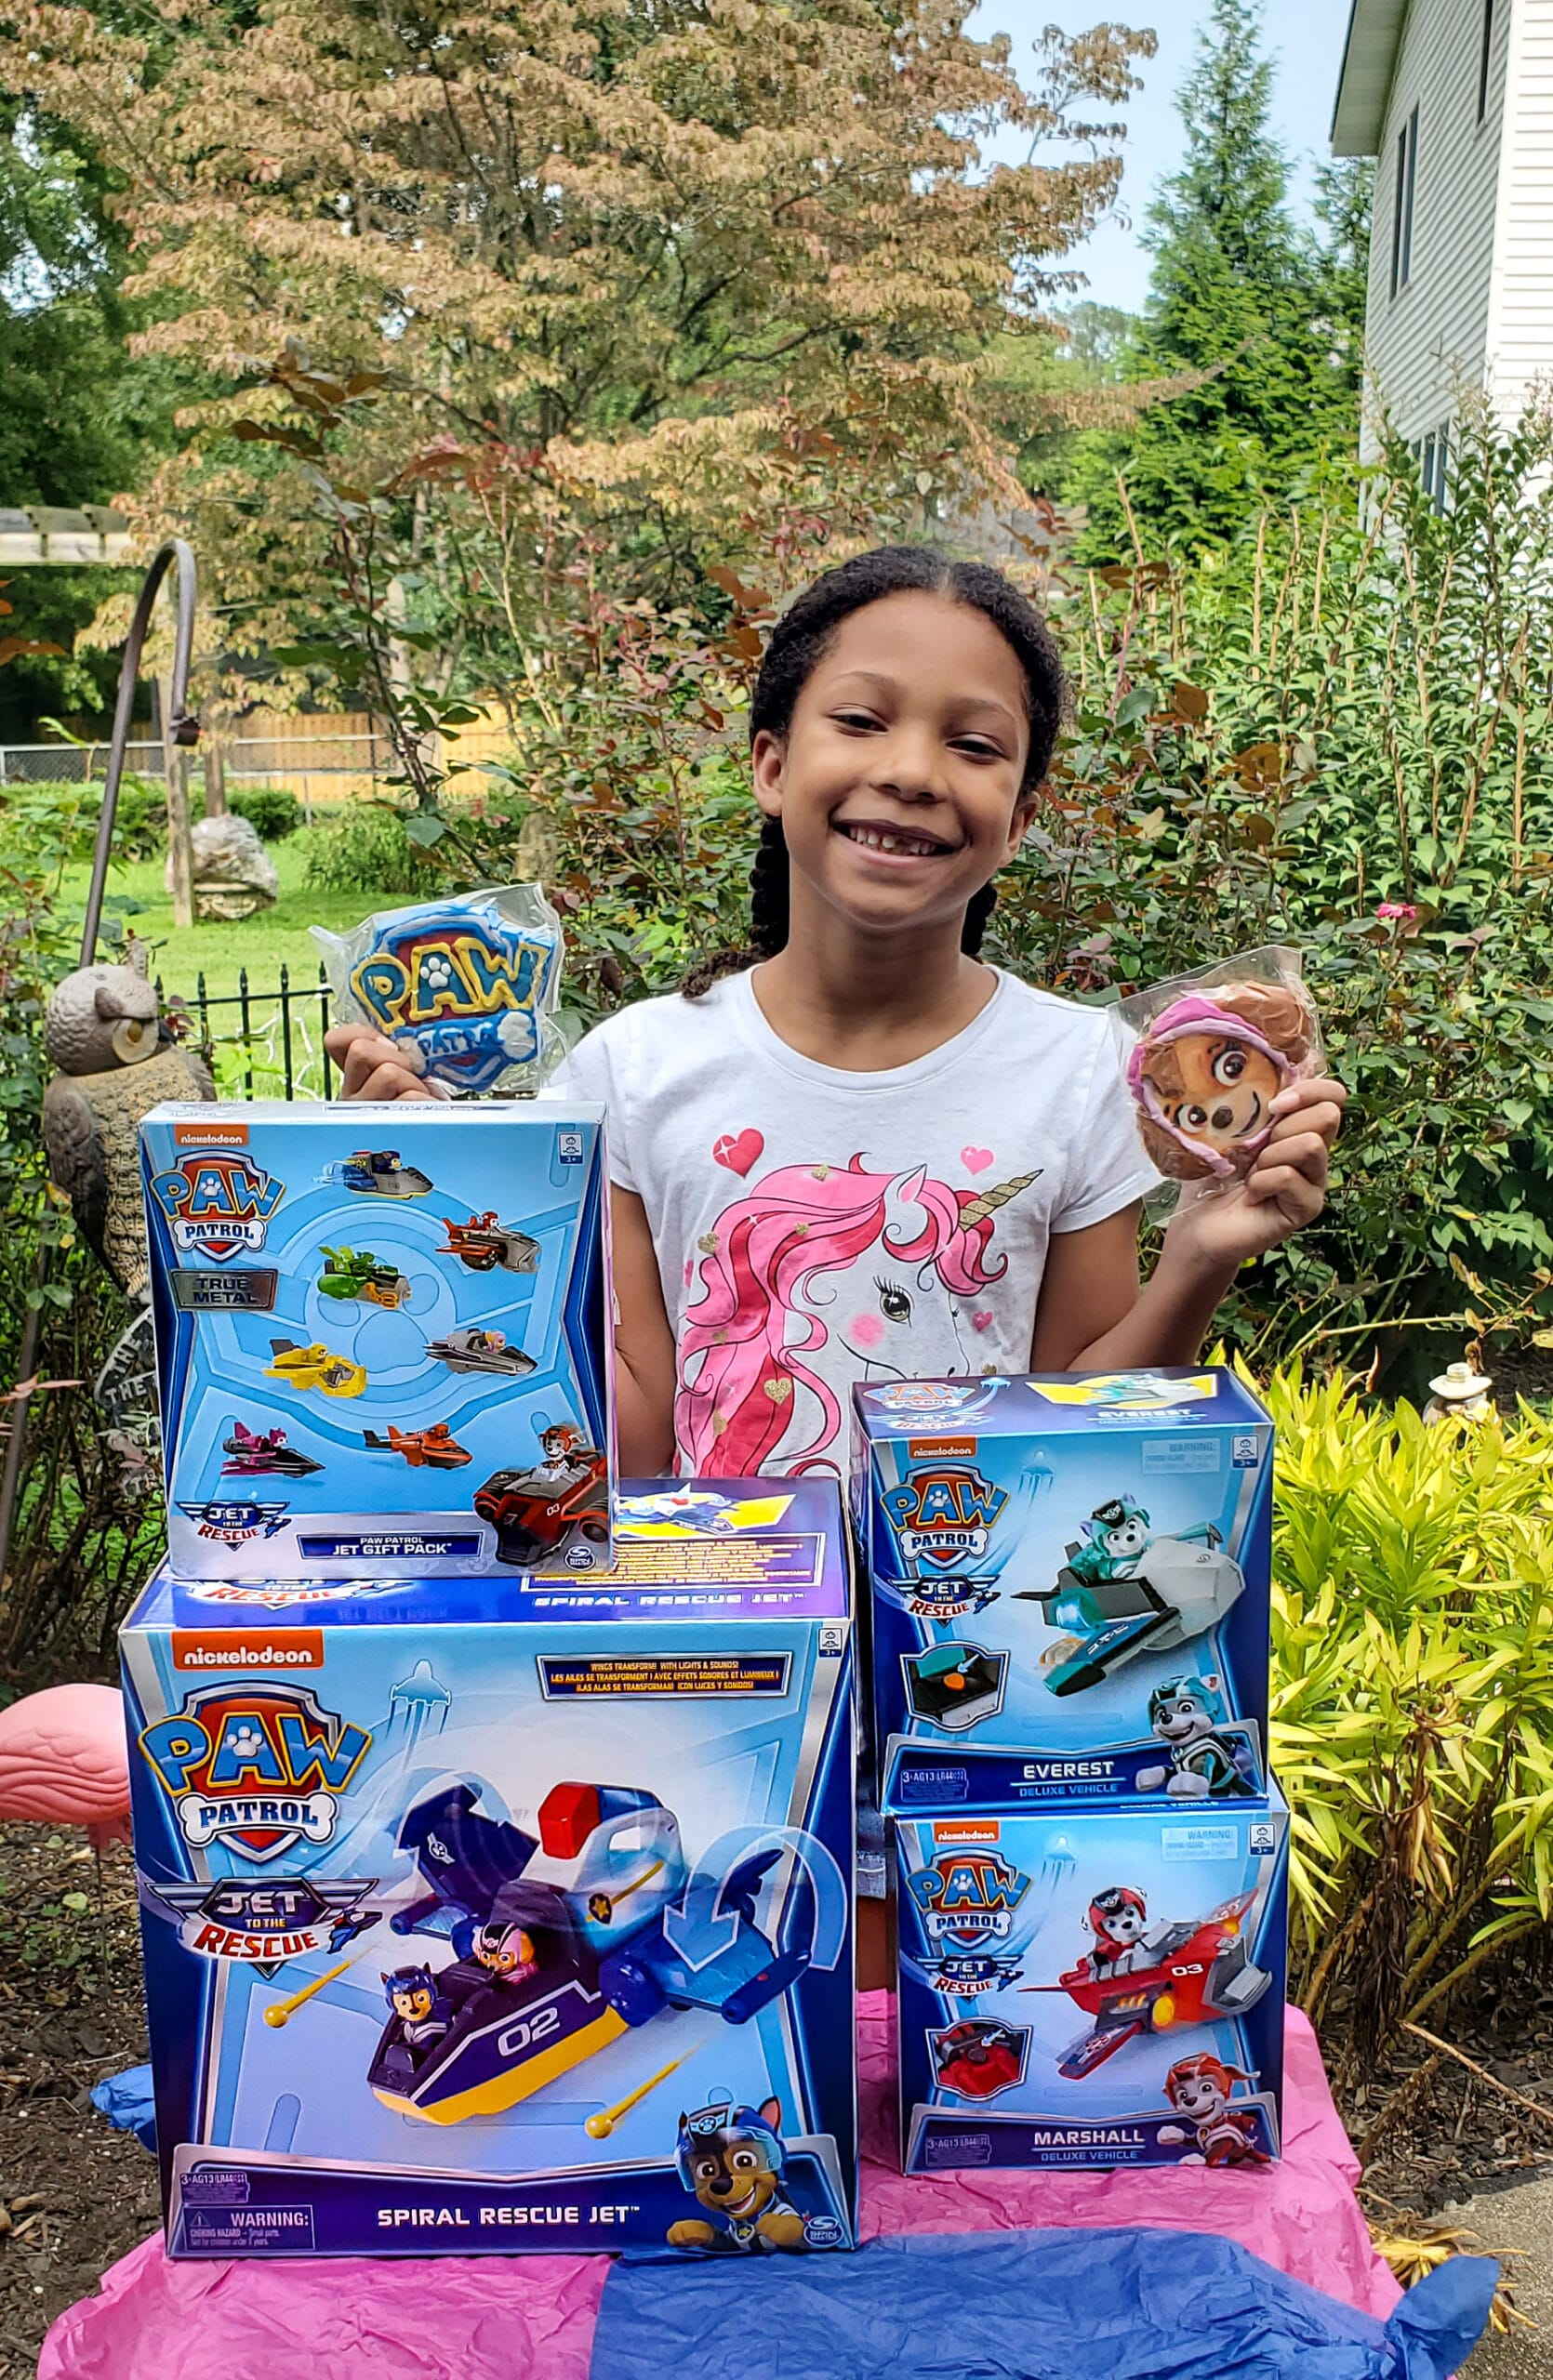 PAW Patrol: Jet to the Rescue Unboxing Toys. Get ready for high-flying adventures with thePAW Patrolpups in the brand-new DVDPAW Patrol: Jet to the Rescue. In celebration of the release of this special feature, Nickelodeon sent us a surprise box full of PAW Patrol goodies! View all of the fun new PAW Patrol: Jet to the Rescue themed toys available on my blog.